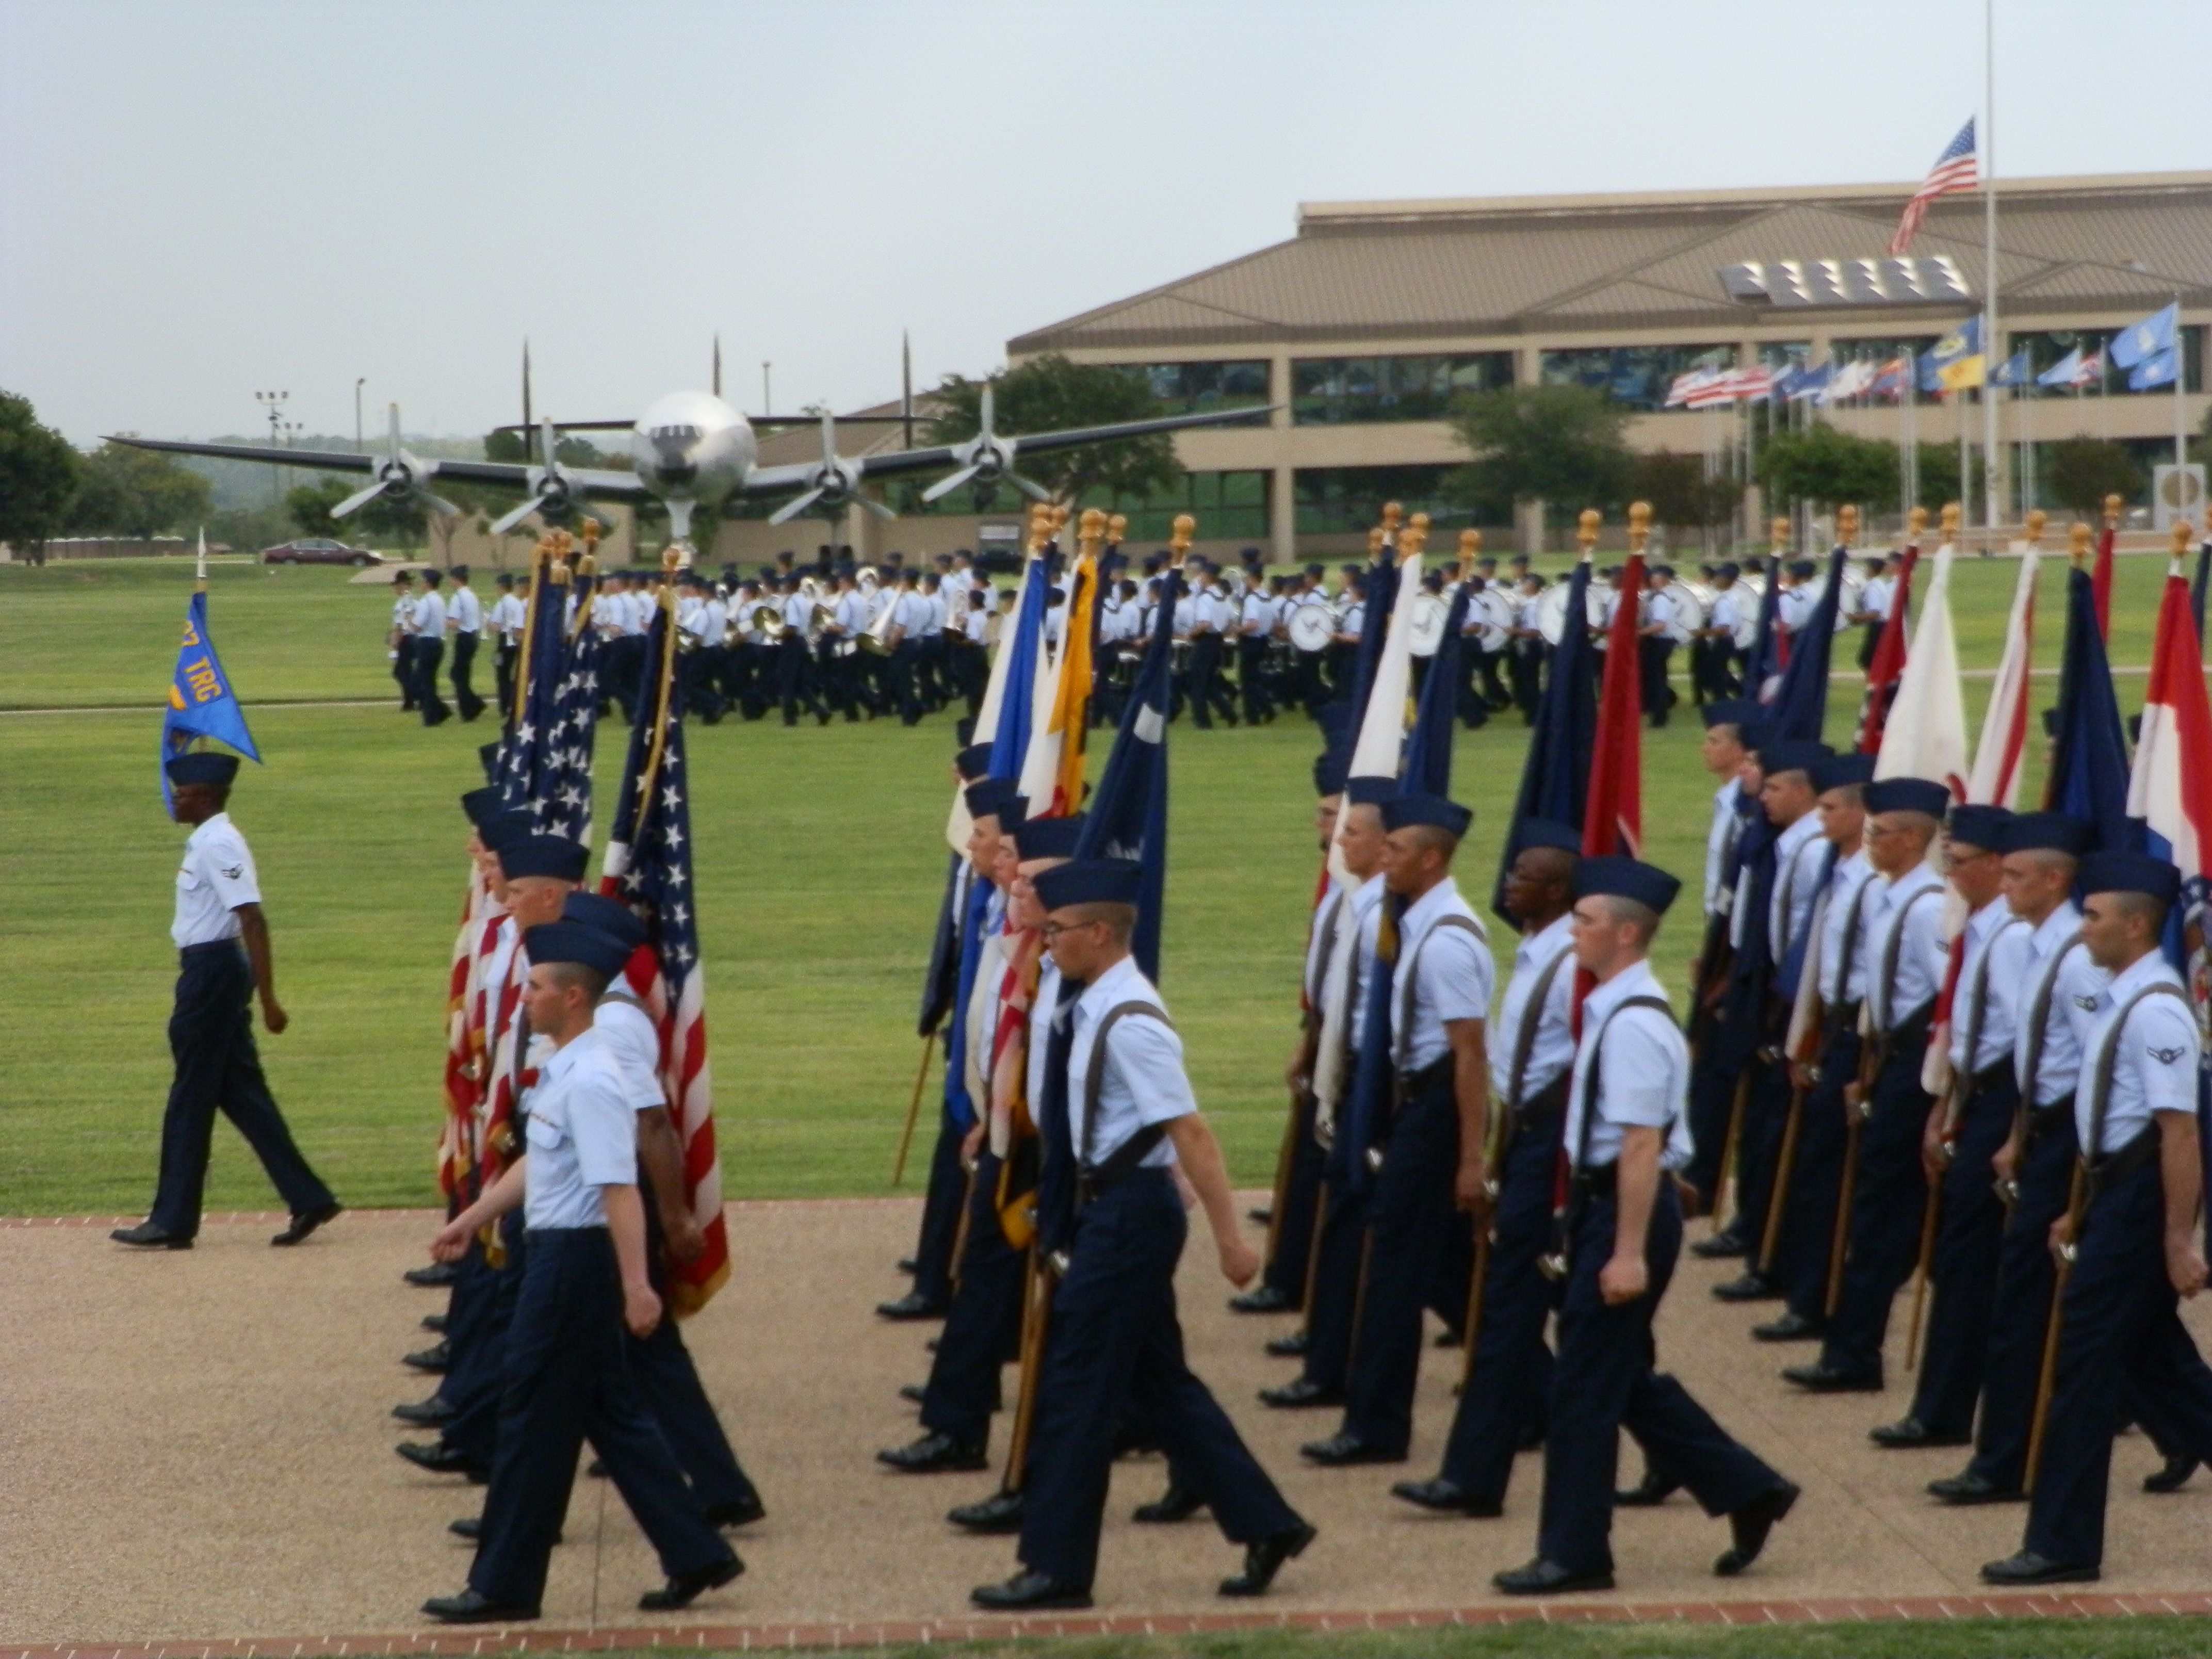 air force bmt bomb run th training squadron flight  graduation ceremony at lackland air force base in san antonio tx part of the